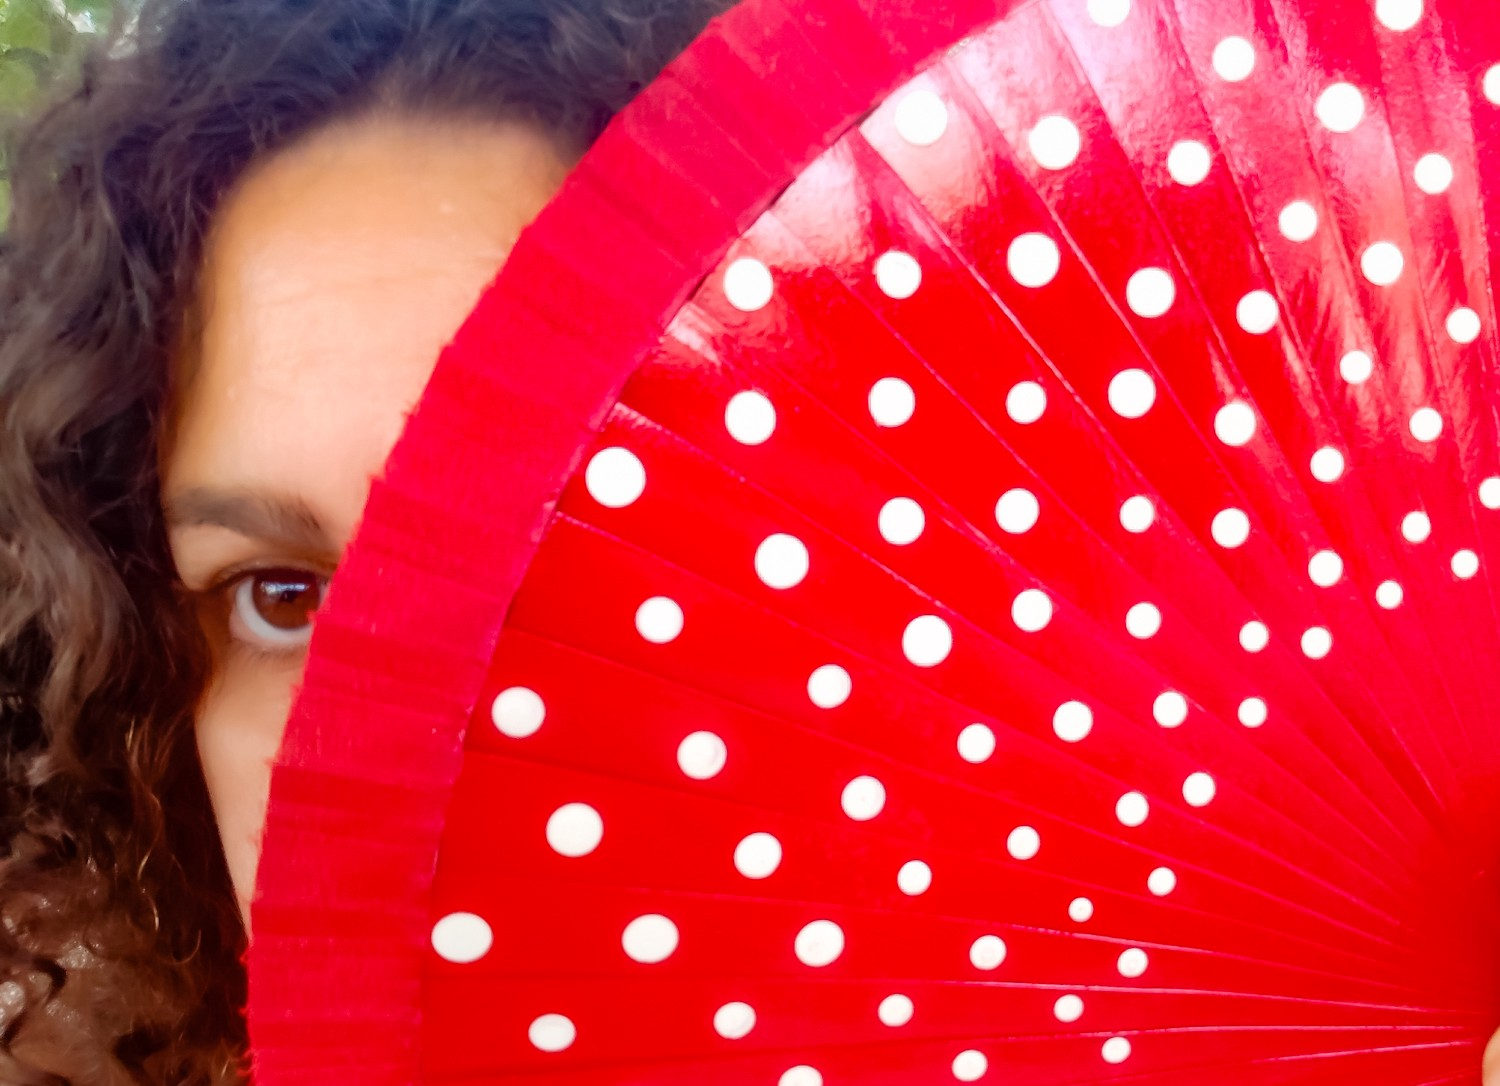 Image of the author partially covering her face to reveal only the left eye looking straight, while hiding behind a Spanish red fan. Her (my) features are Mediterranean, brown eyes, tan skin, and brown curly hair.